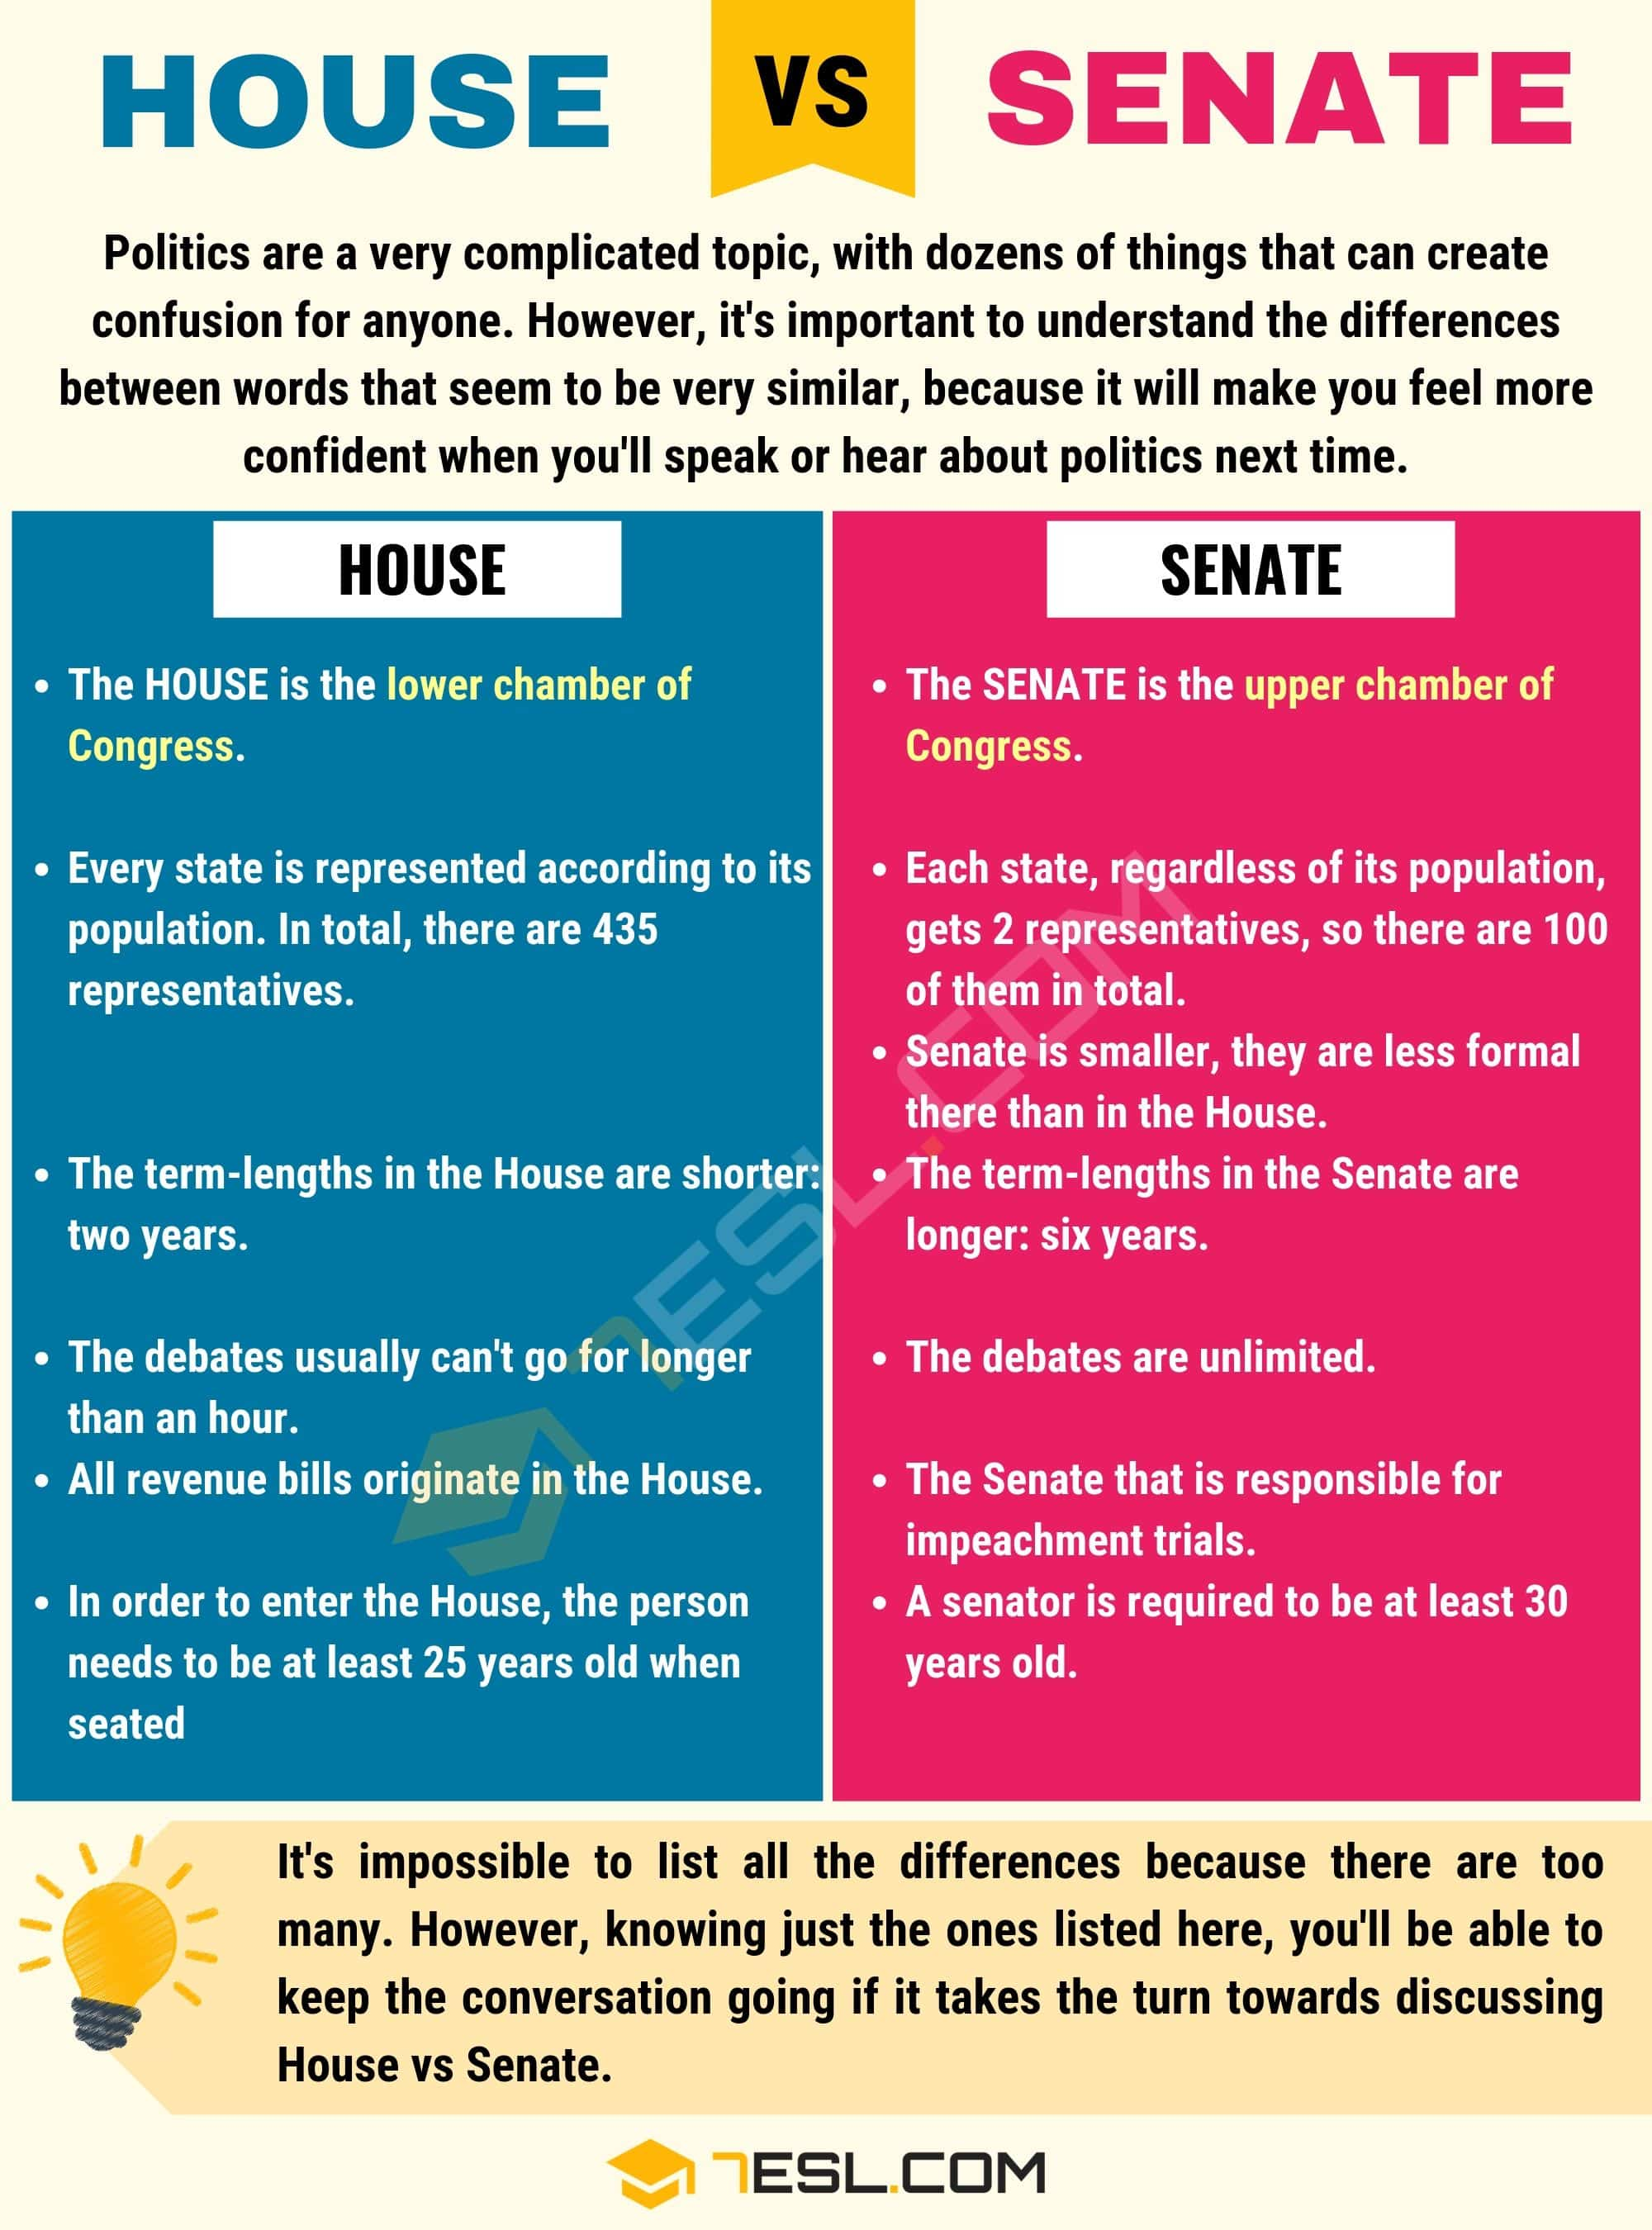 House vs Senate